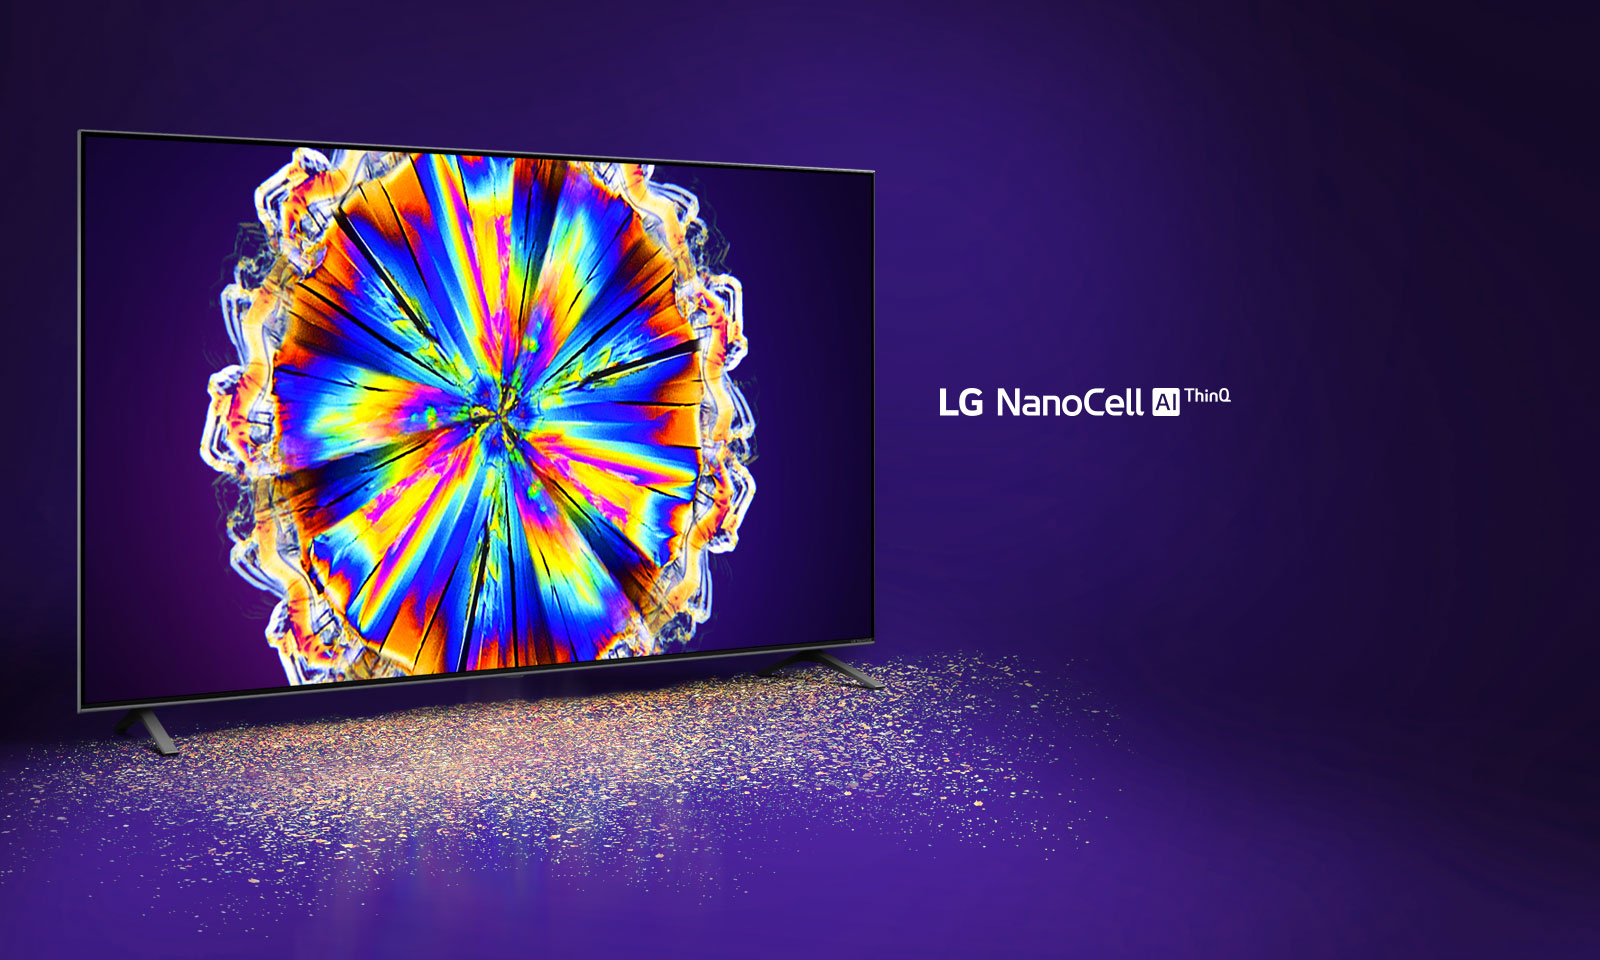 The image of colorful microcrystal on the TV screen